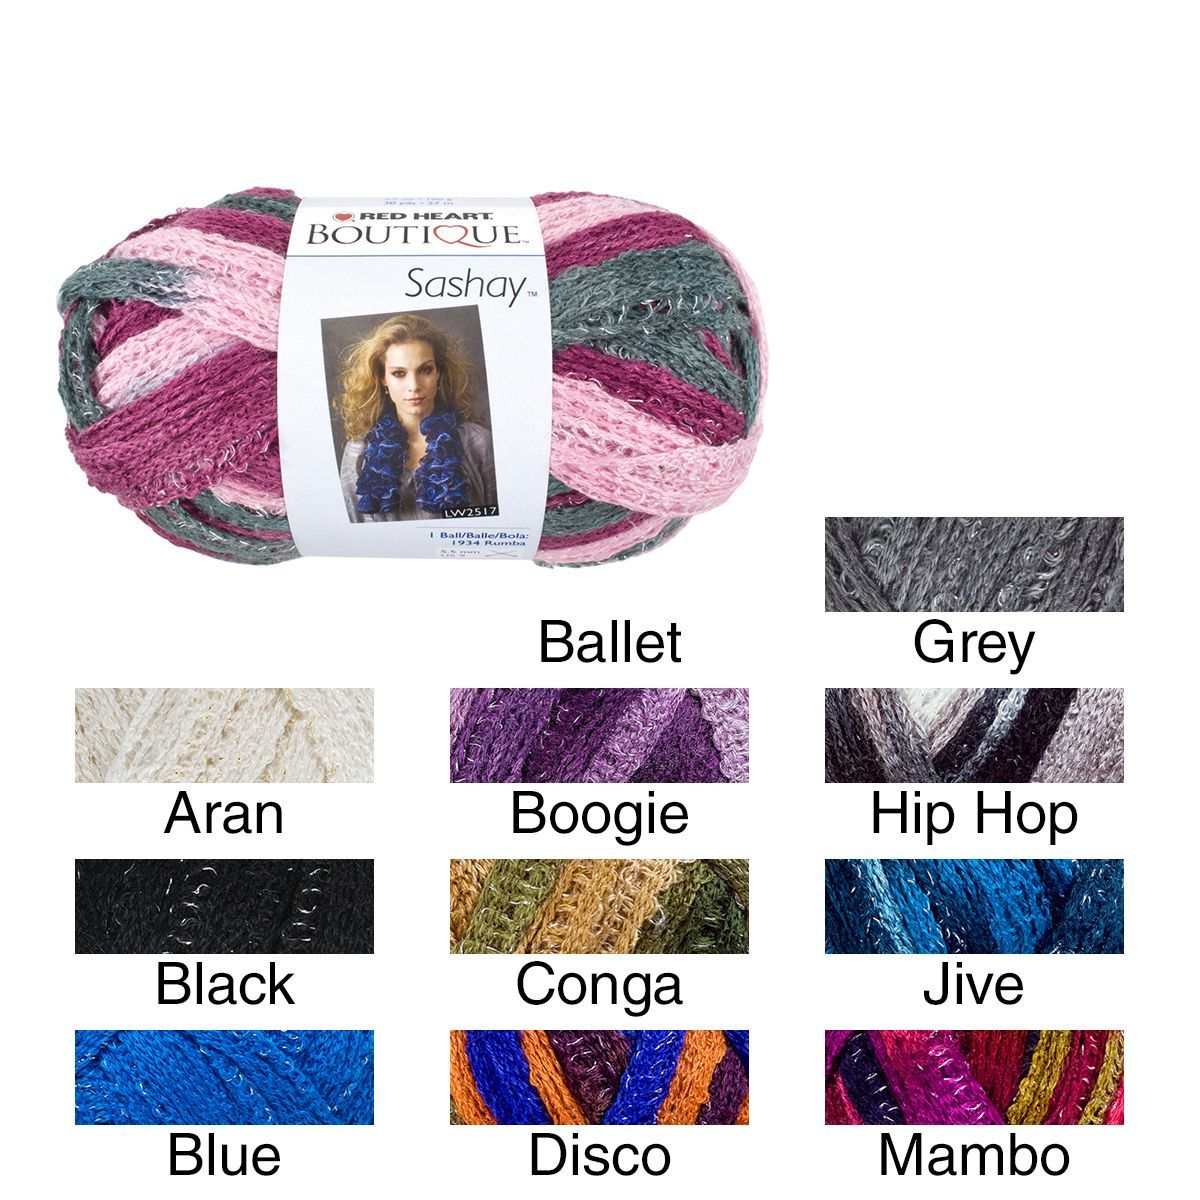 Red Heart Boutique Sashay Yarn | Products | Pinterest